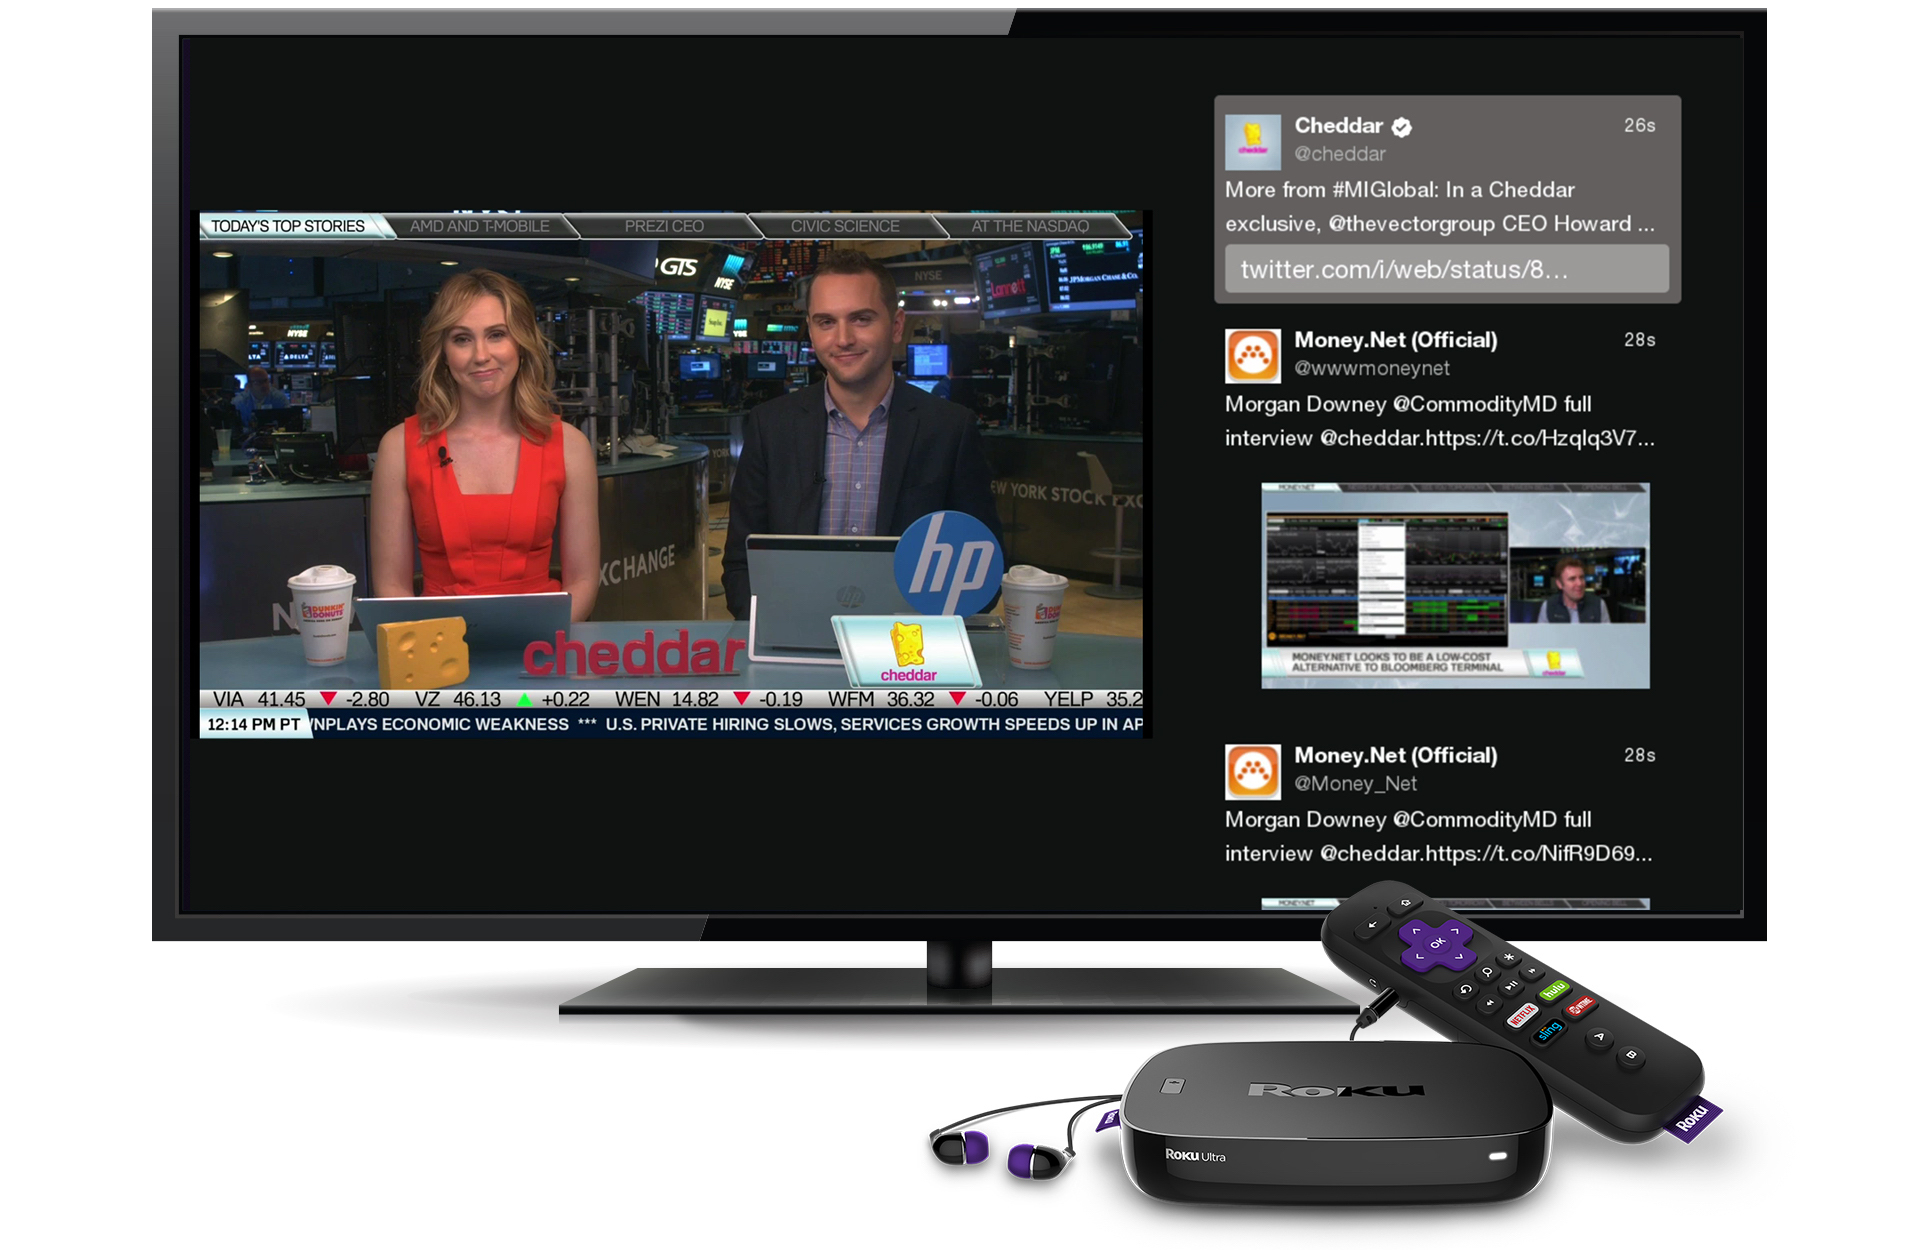 Twitter Launches Live Streaming Channel on Roku